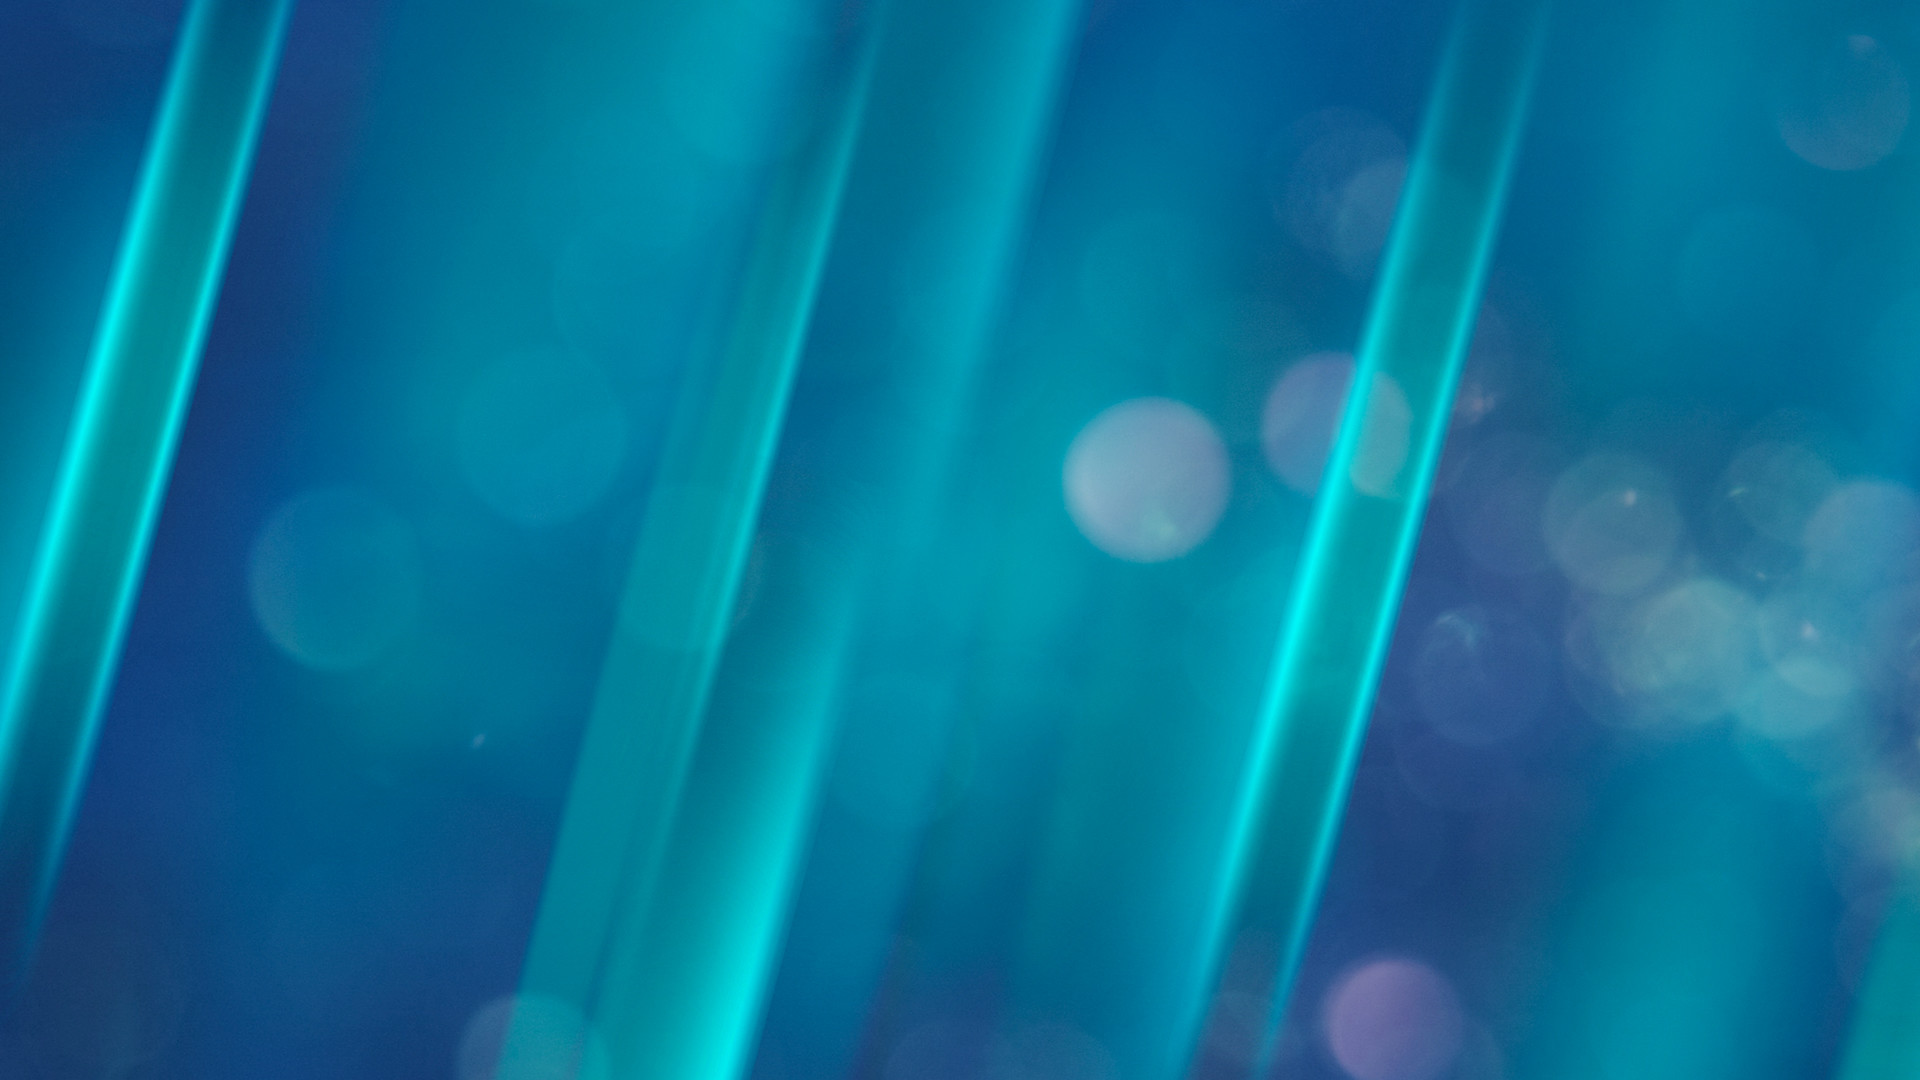 Abstract Blue Light Orbs Ministry Background Communion Theme Church  Wallpaper …